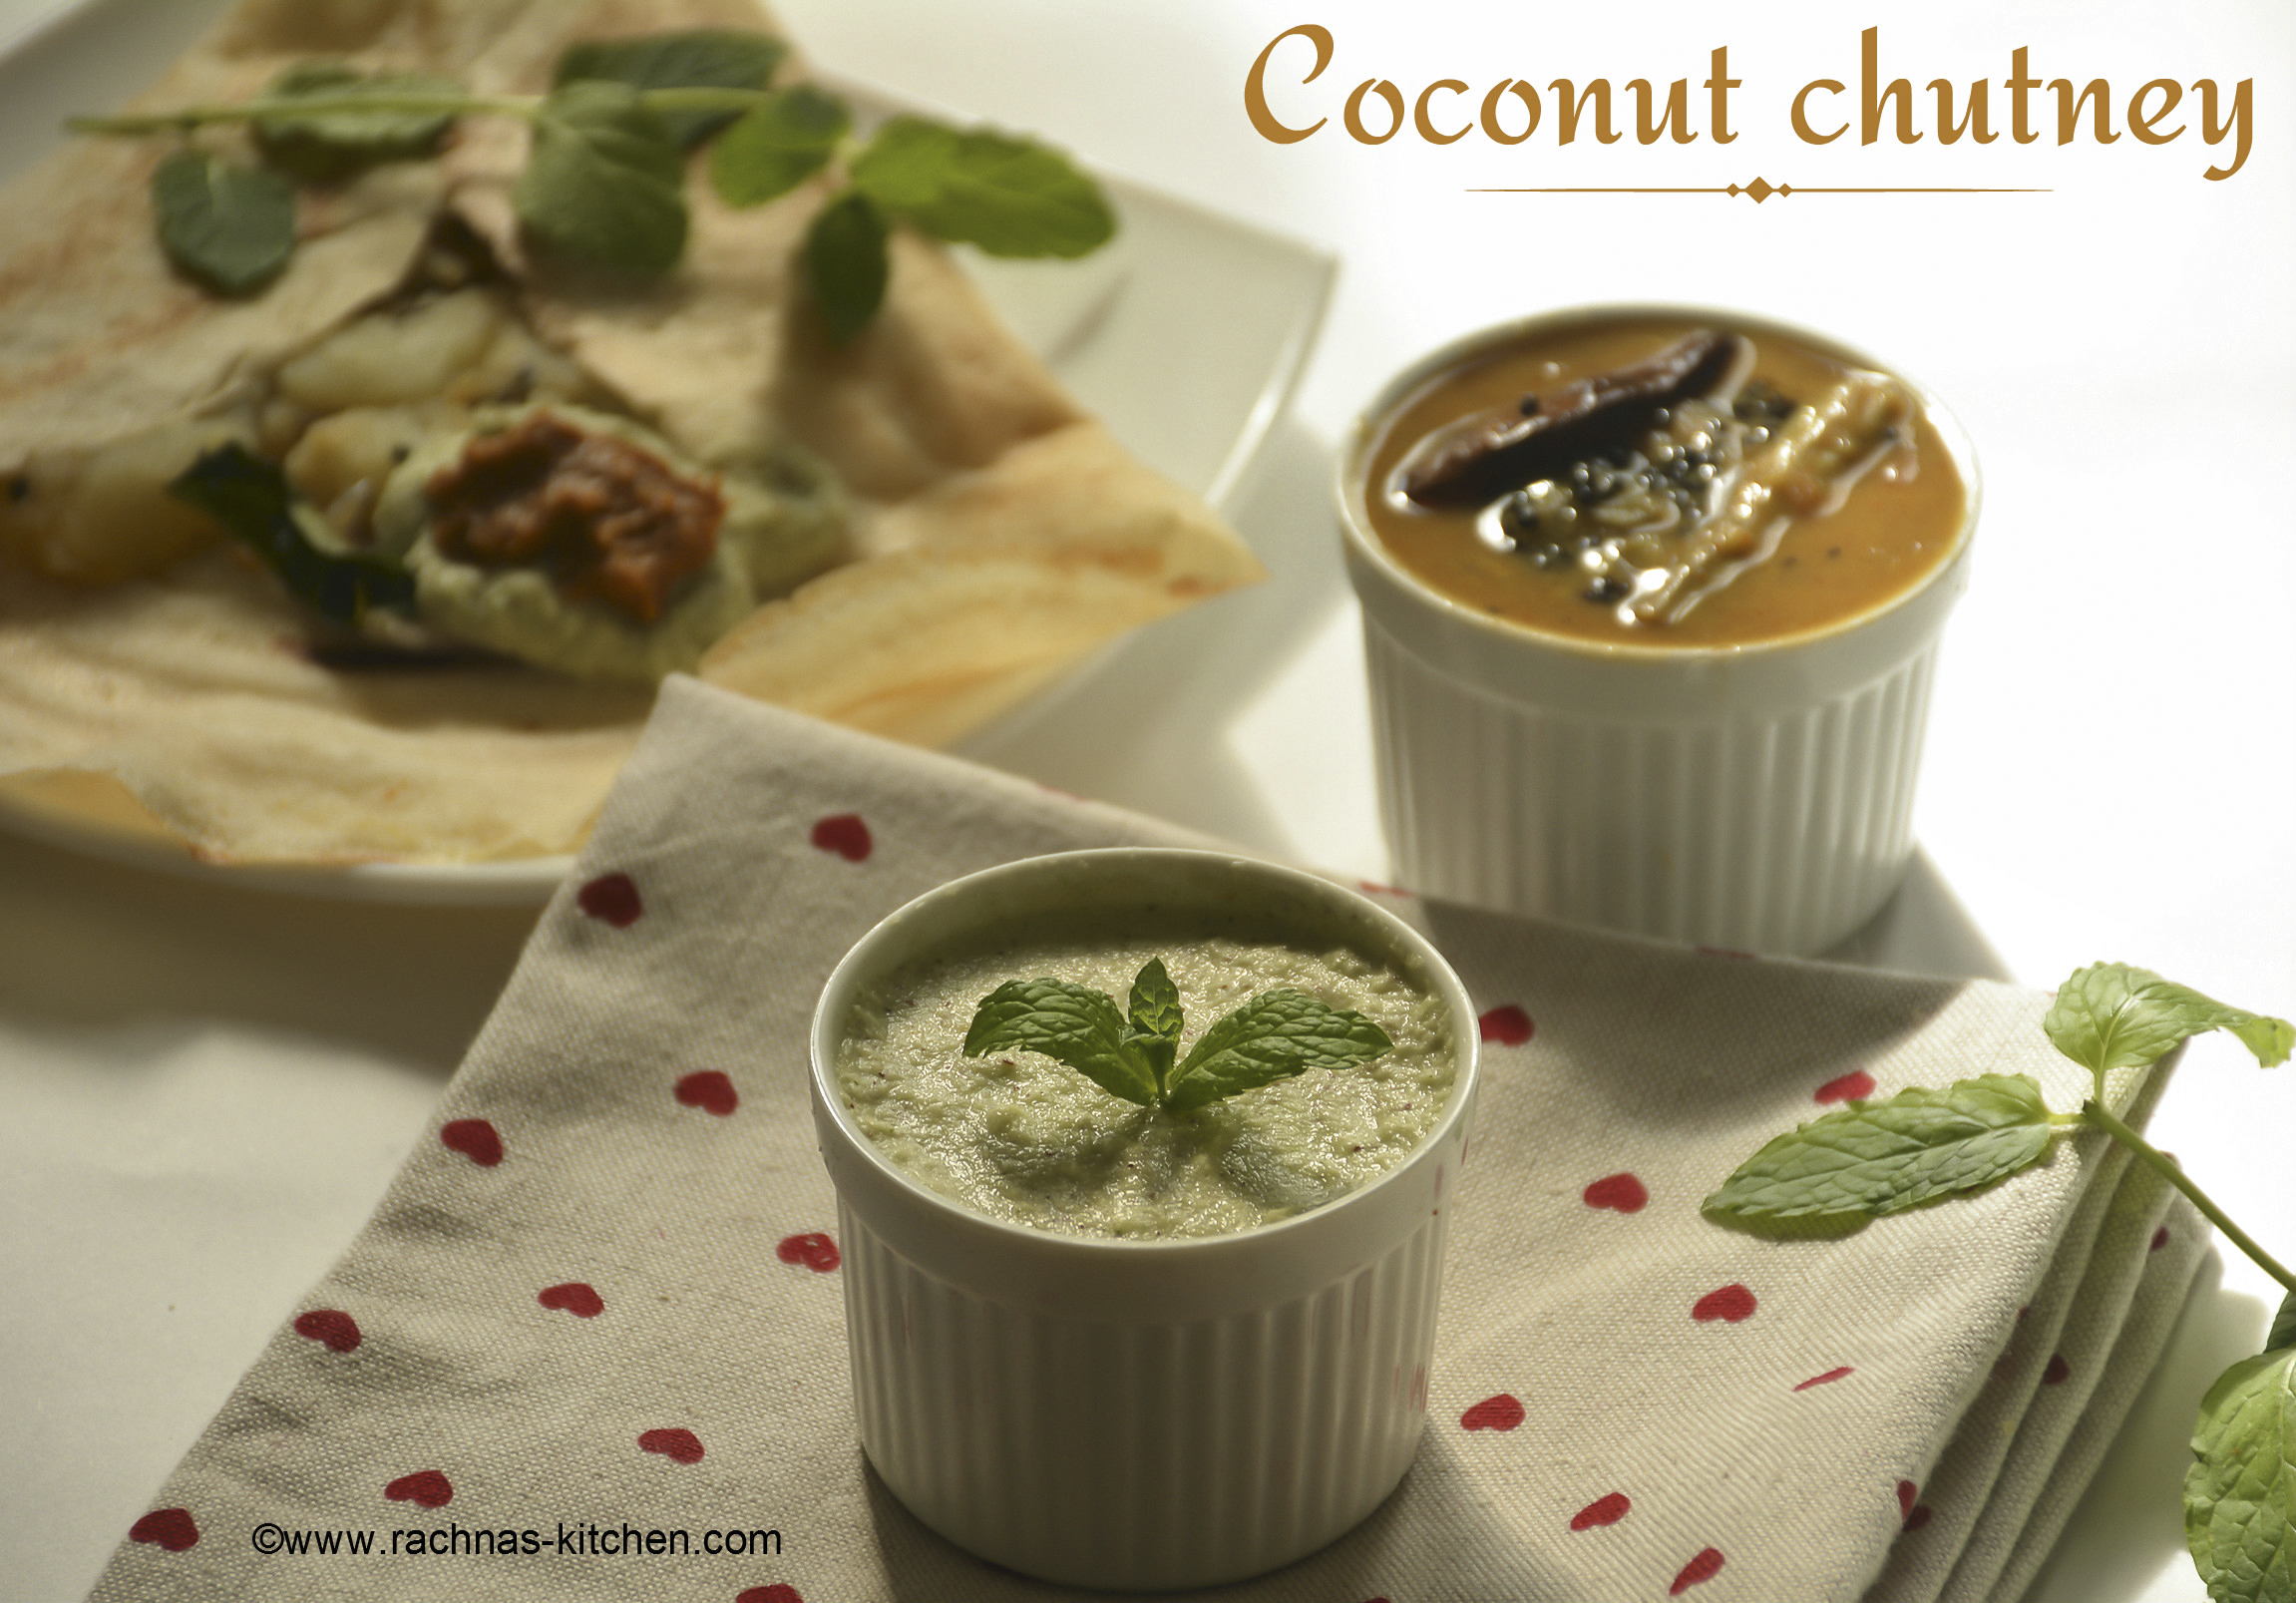 Coconut chutney recipe, How to make coconut chutney | nariyal ki chutney